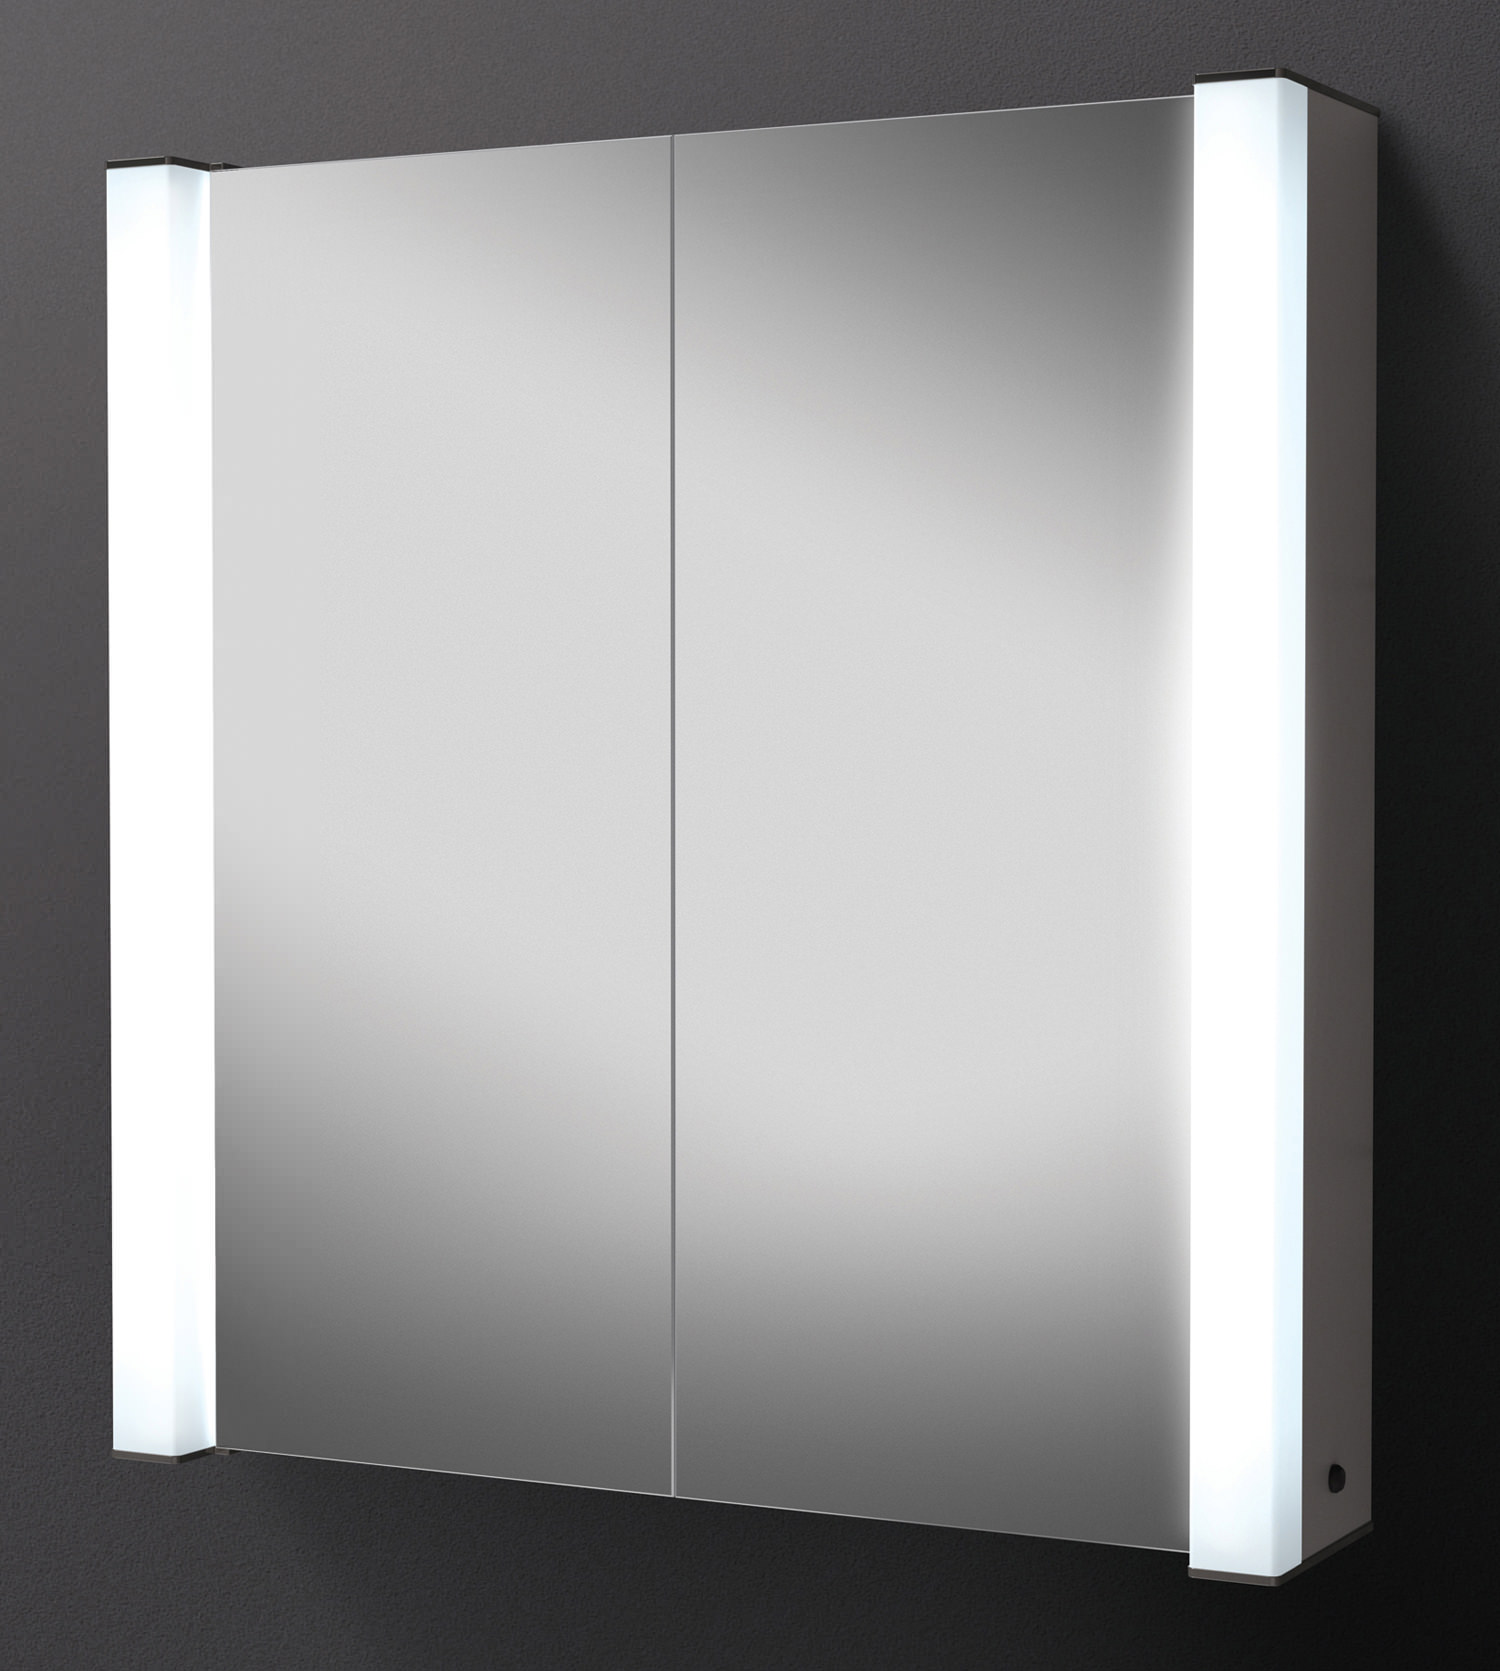 illuminated mirrored bathroom cabinets hib photec door illuminated aluminium mirrored 17778